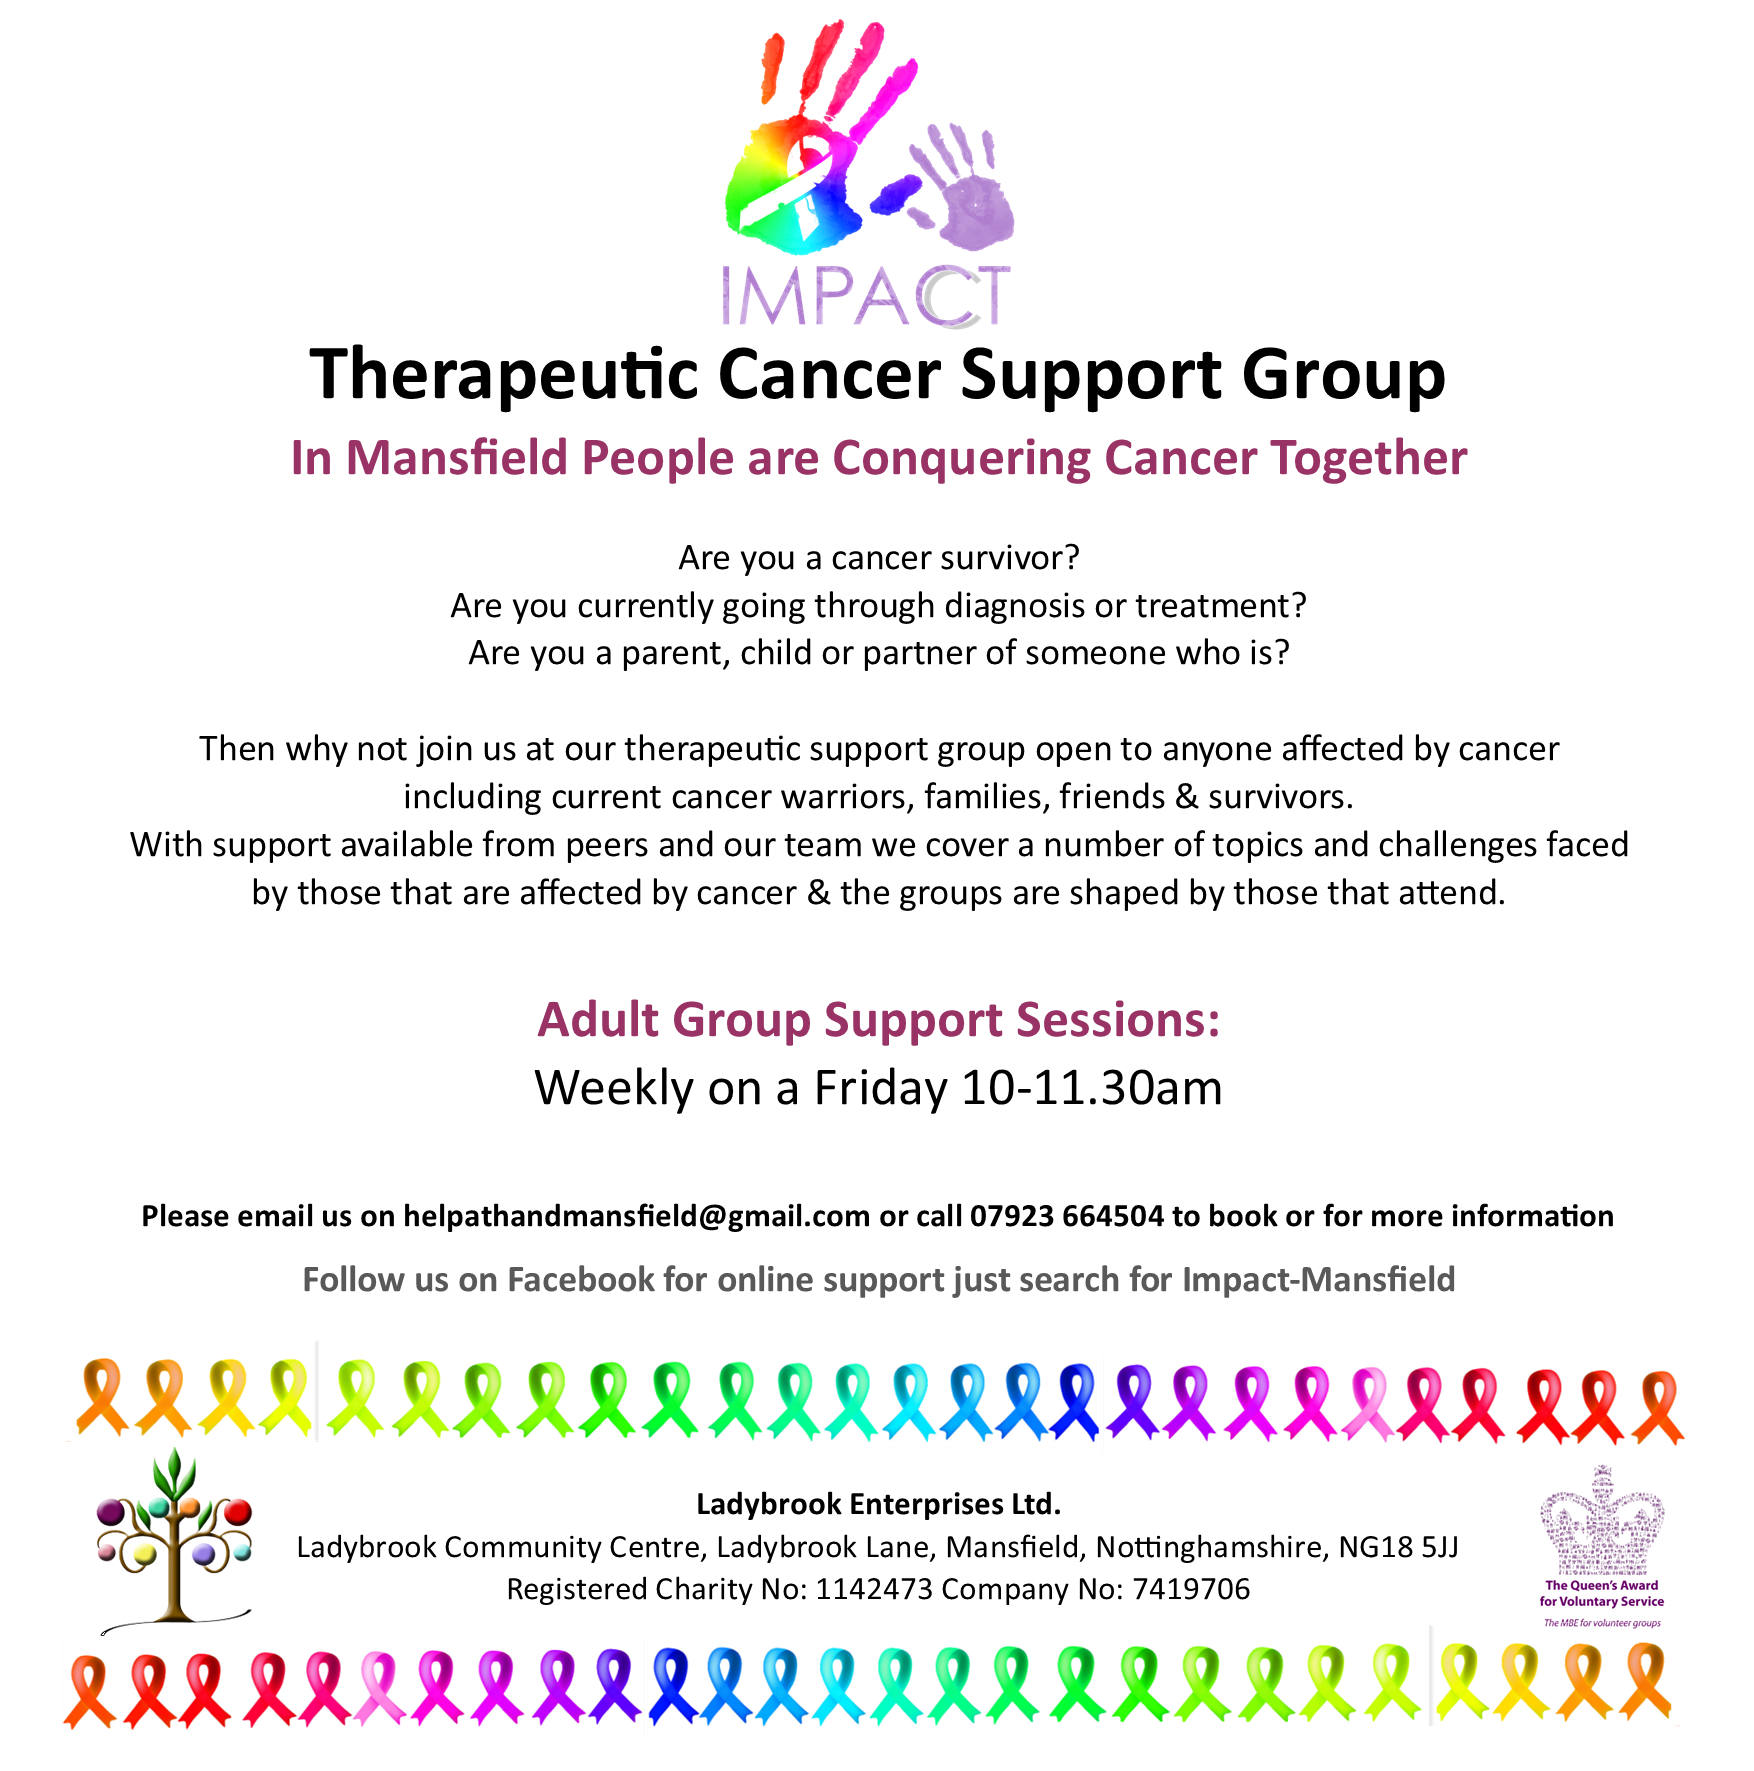 IMPACT therapeutic support poster